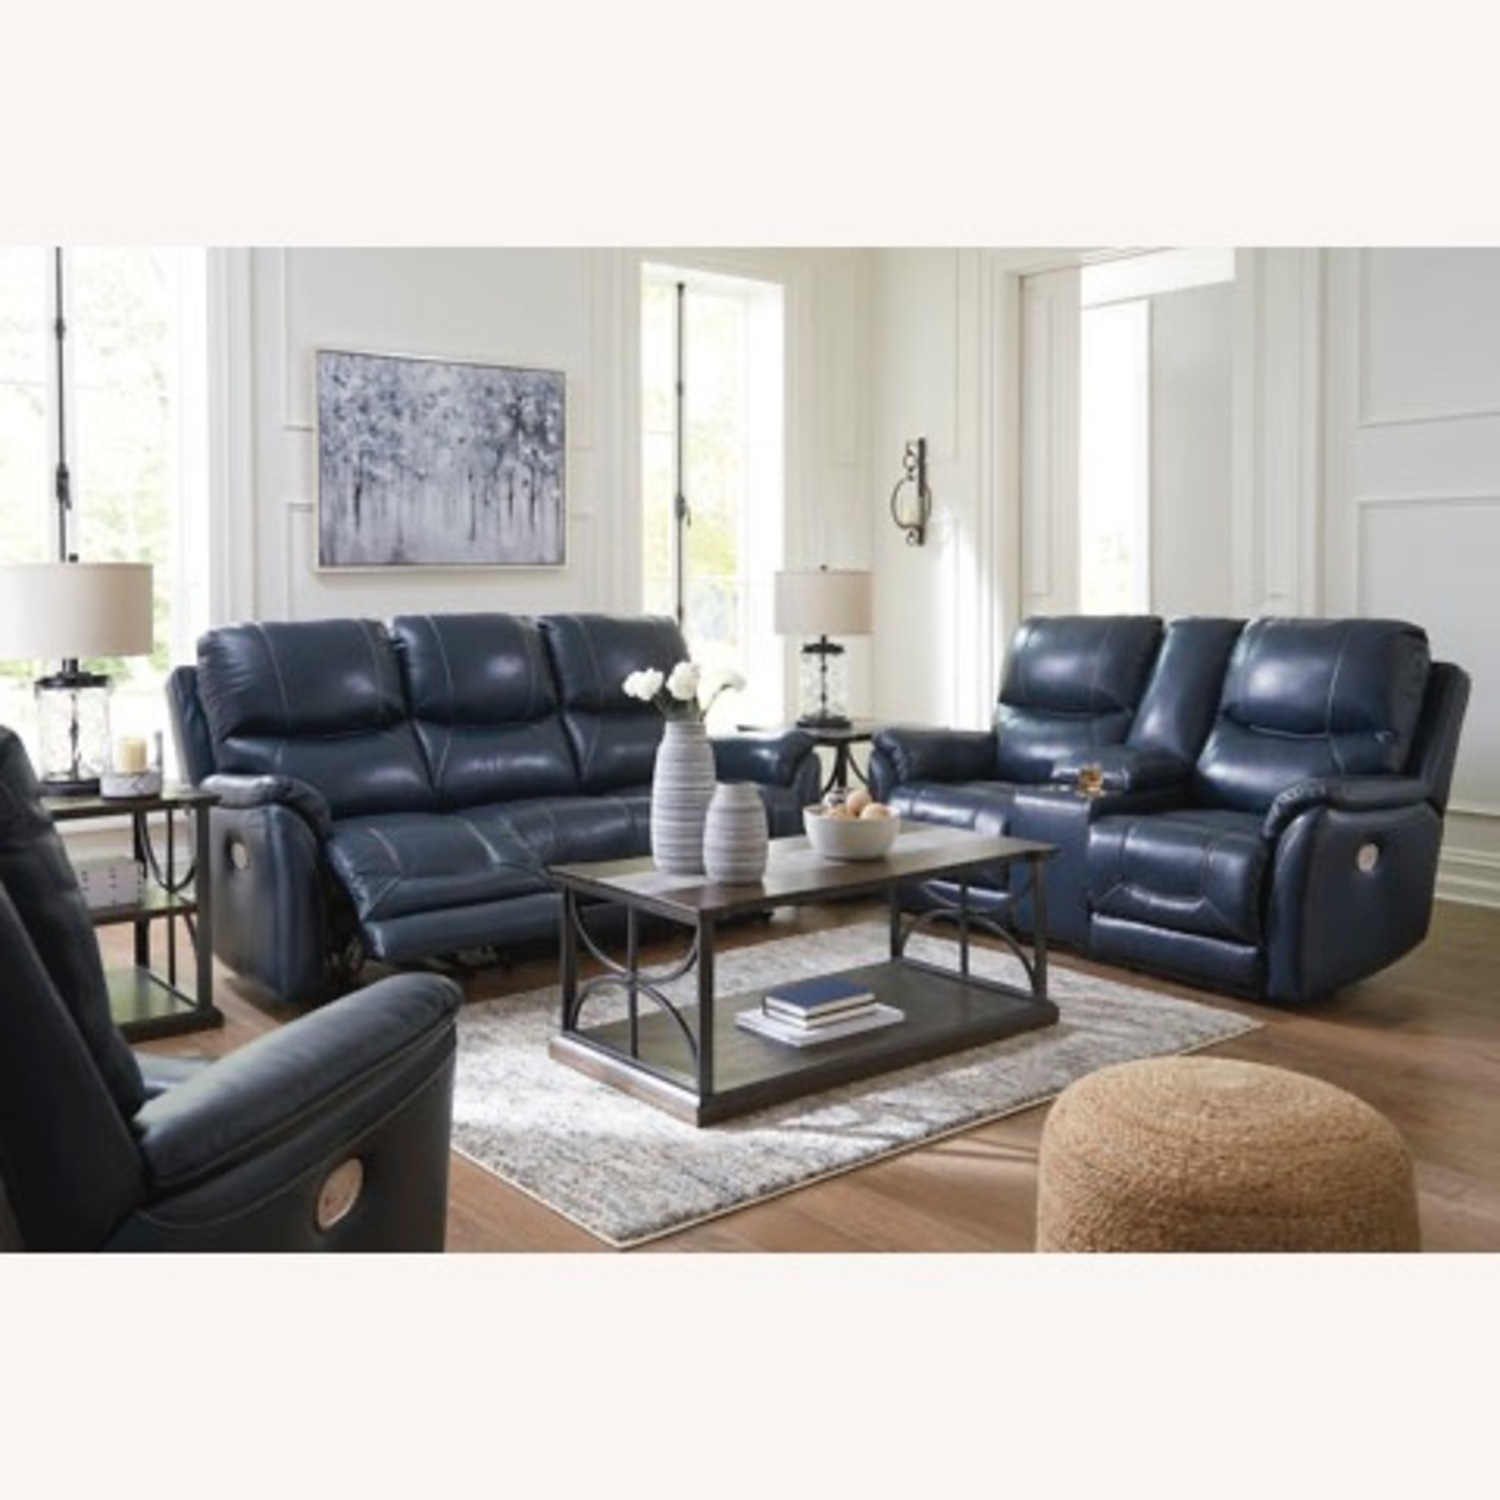 Ashley Furniture Genuine Leather Power Reclining Sofa - image-6